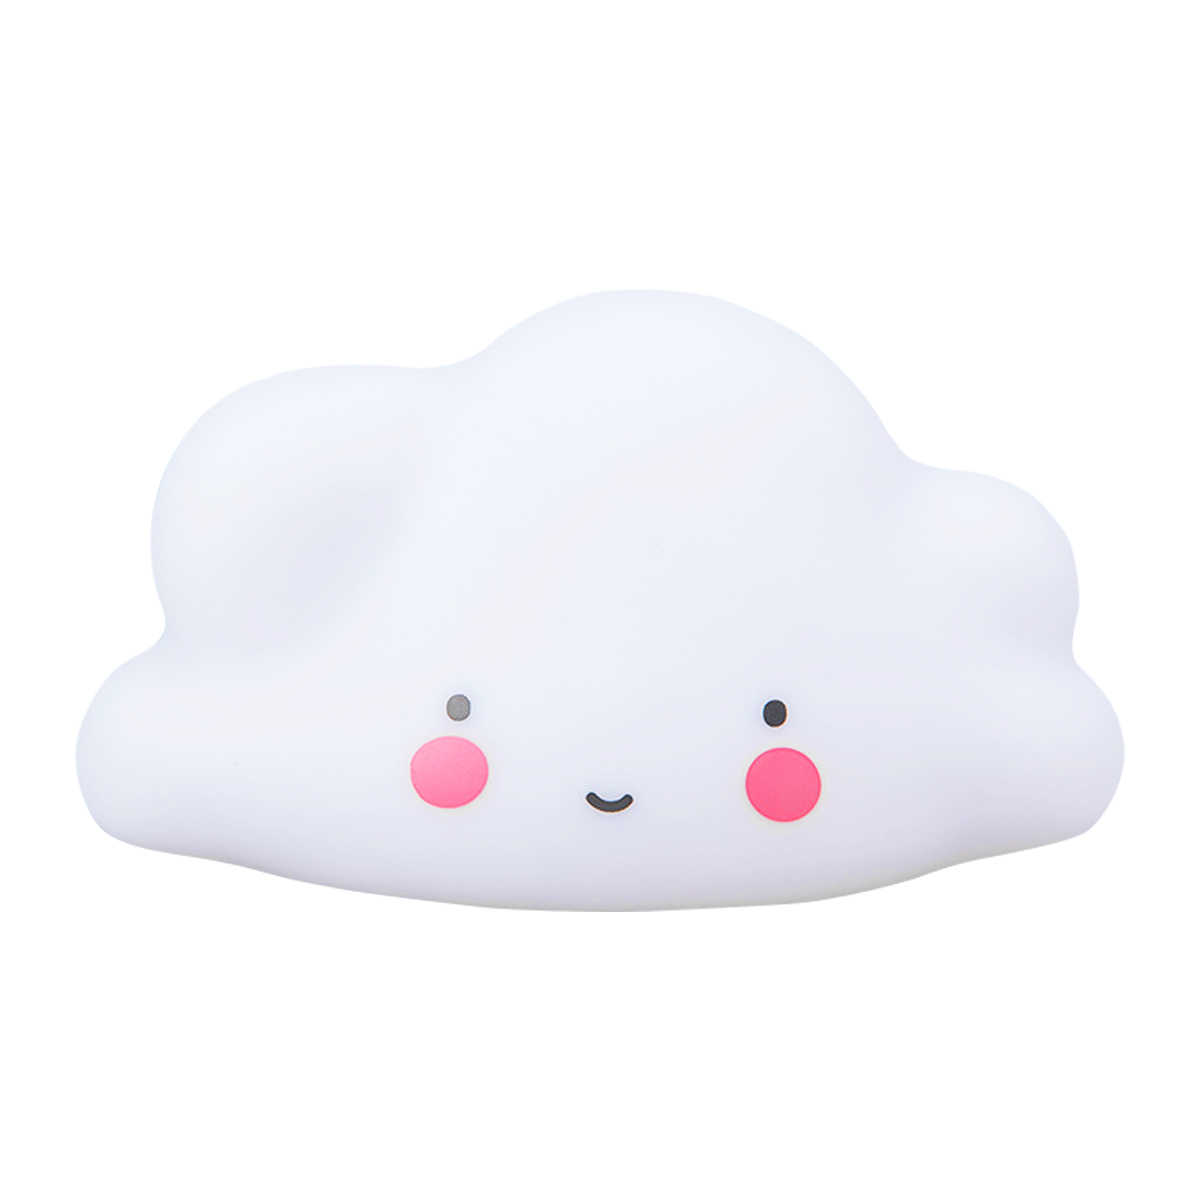 Creative Cloud Night Lamp White Cloud Light Home Decor Baby Light For Kids Bedroom Christmas Gift Bedroom Decorative Lamp